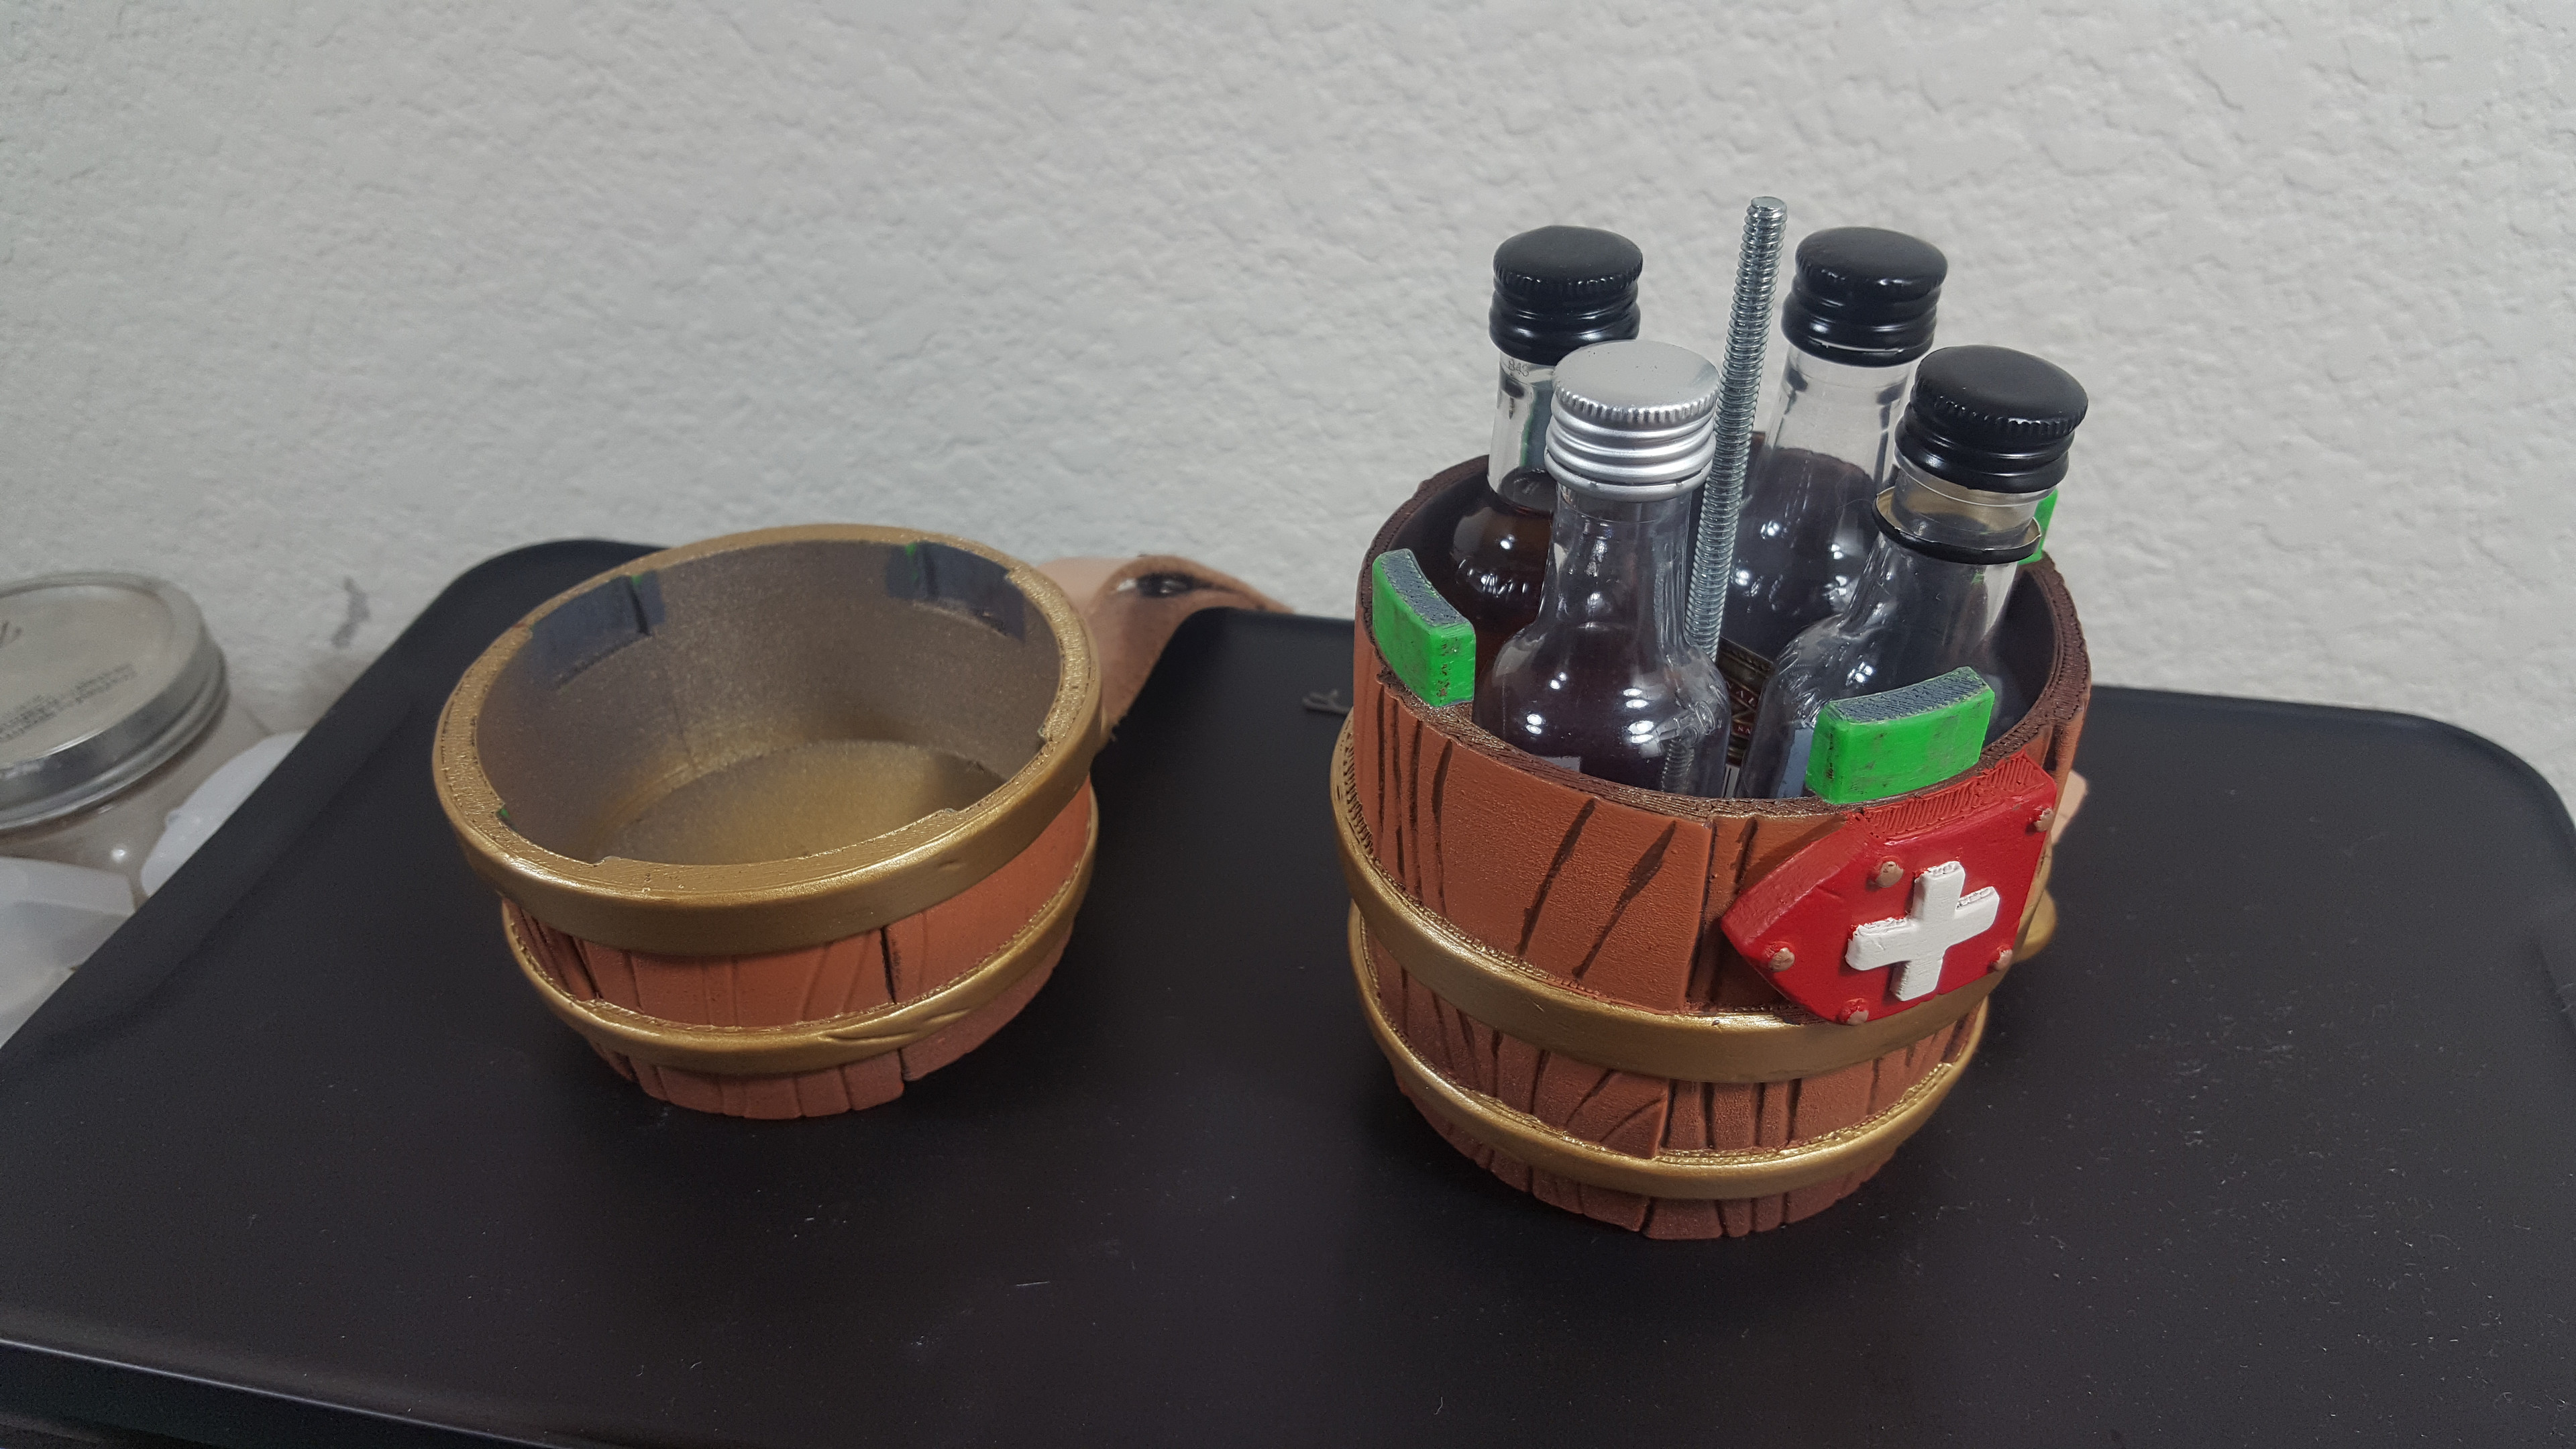 Fits 4 whiskey shooters inside!